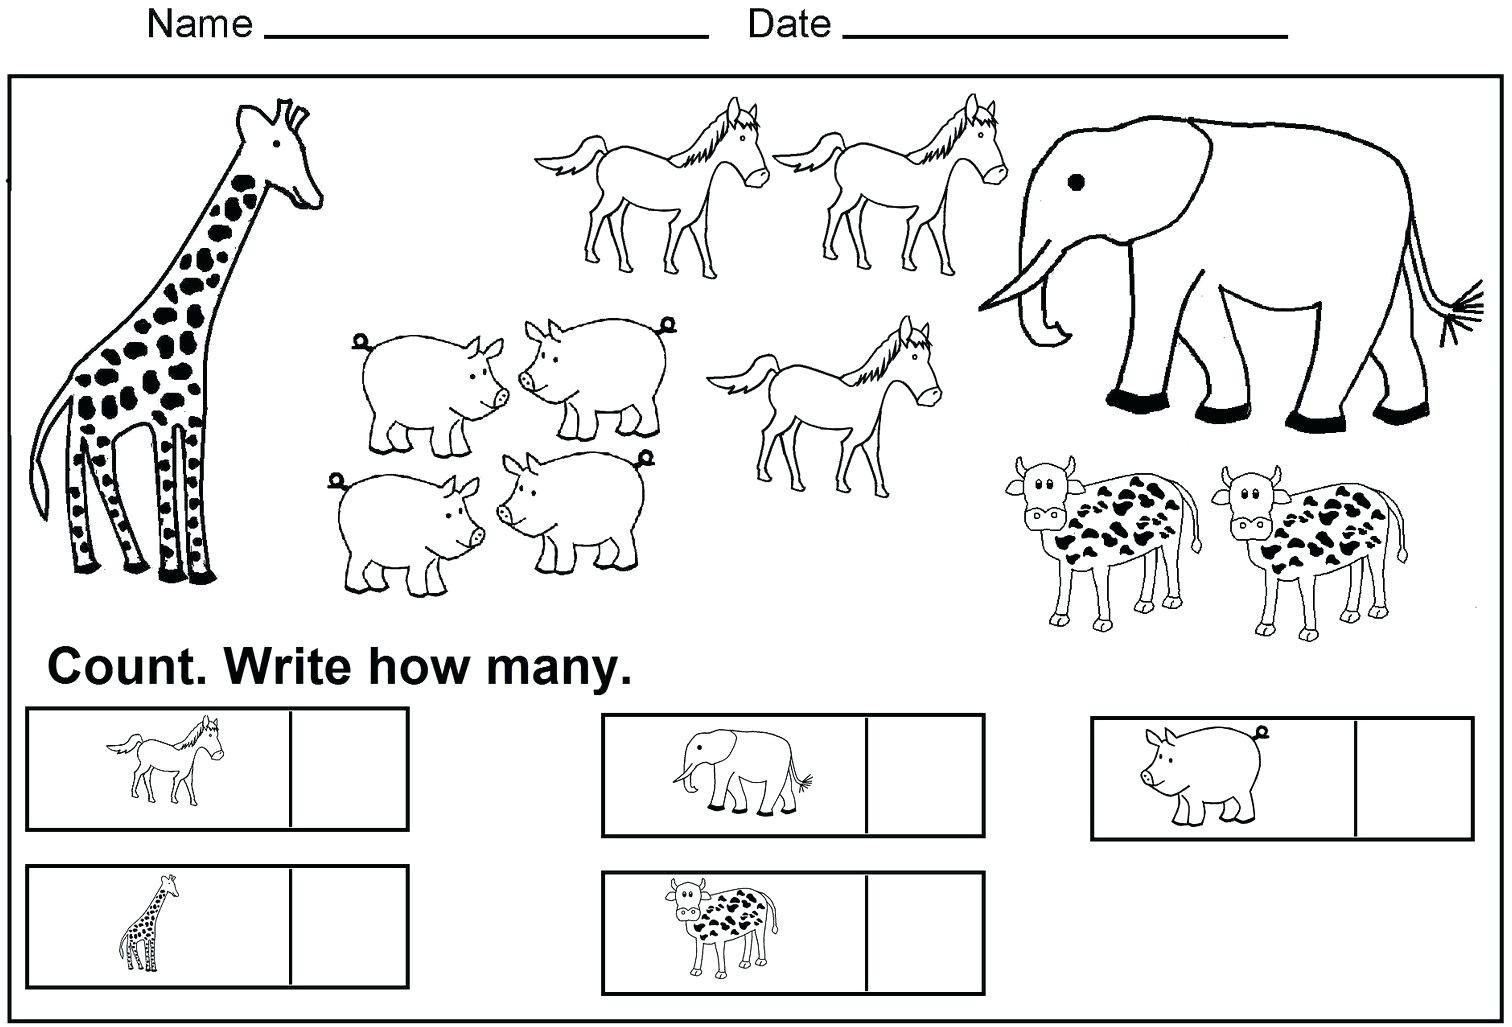 Mammals Worksheet First Grade 1st Grade Writing Number Worksheet Classroom Games for 6th